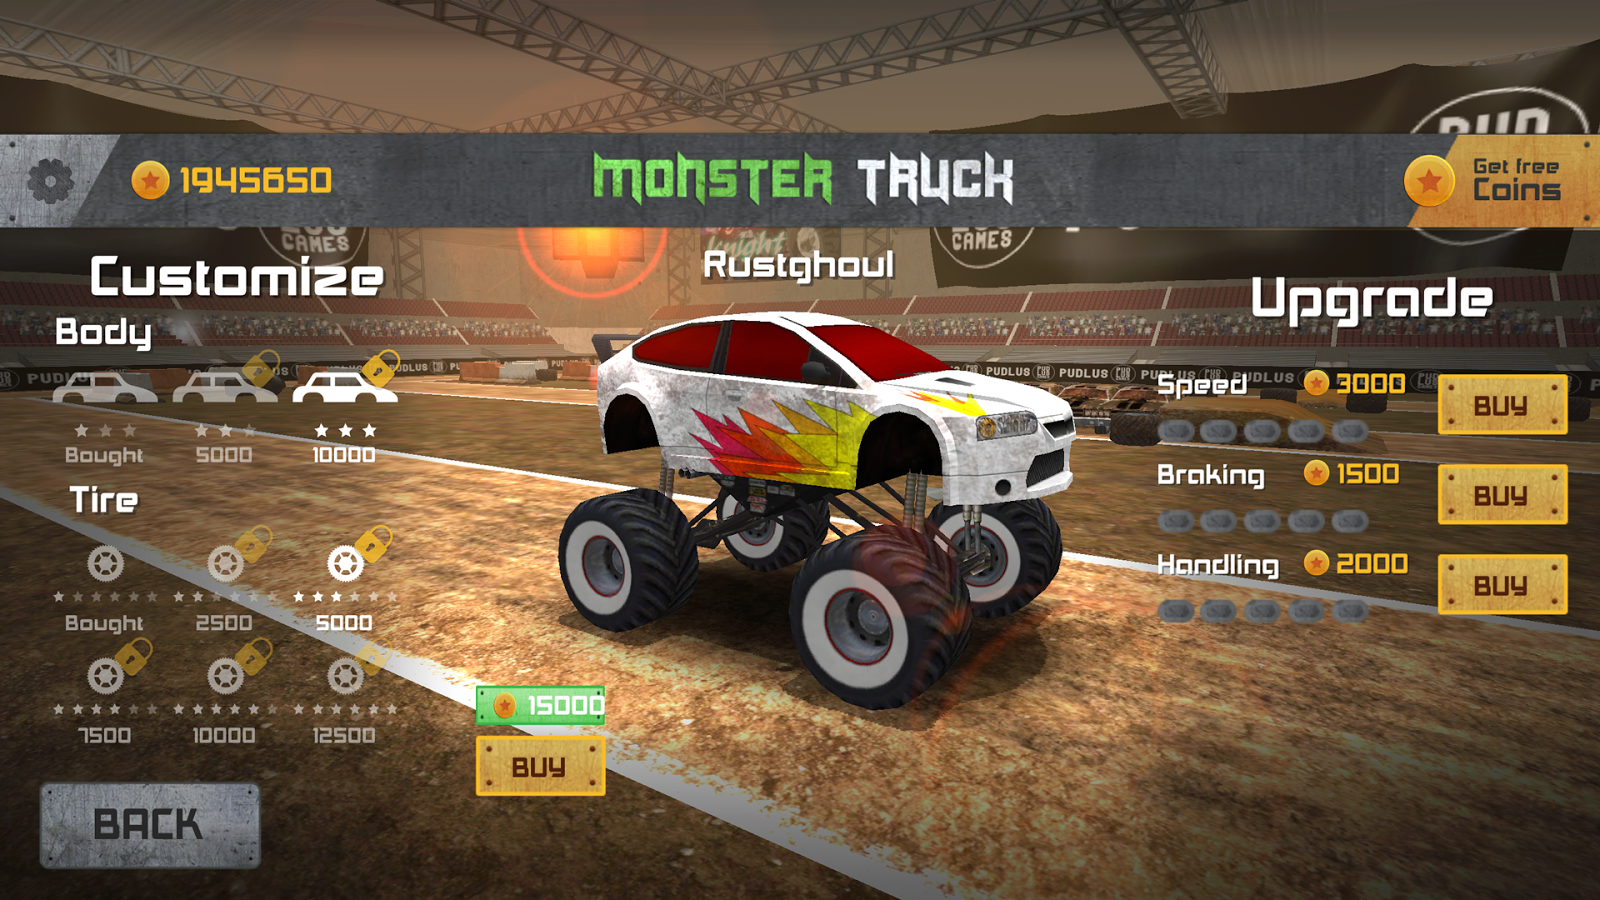 Monster Truck Race Screenshot 7